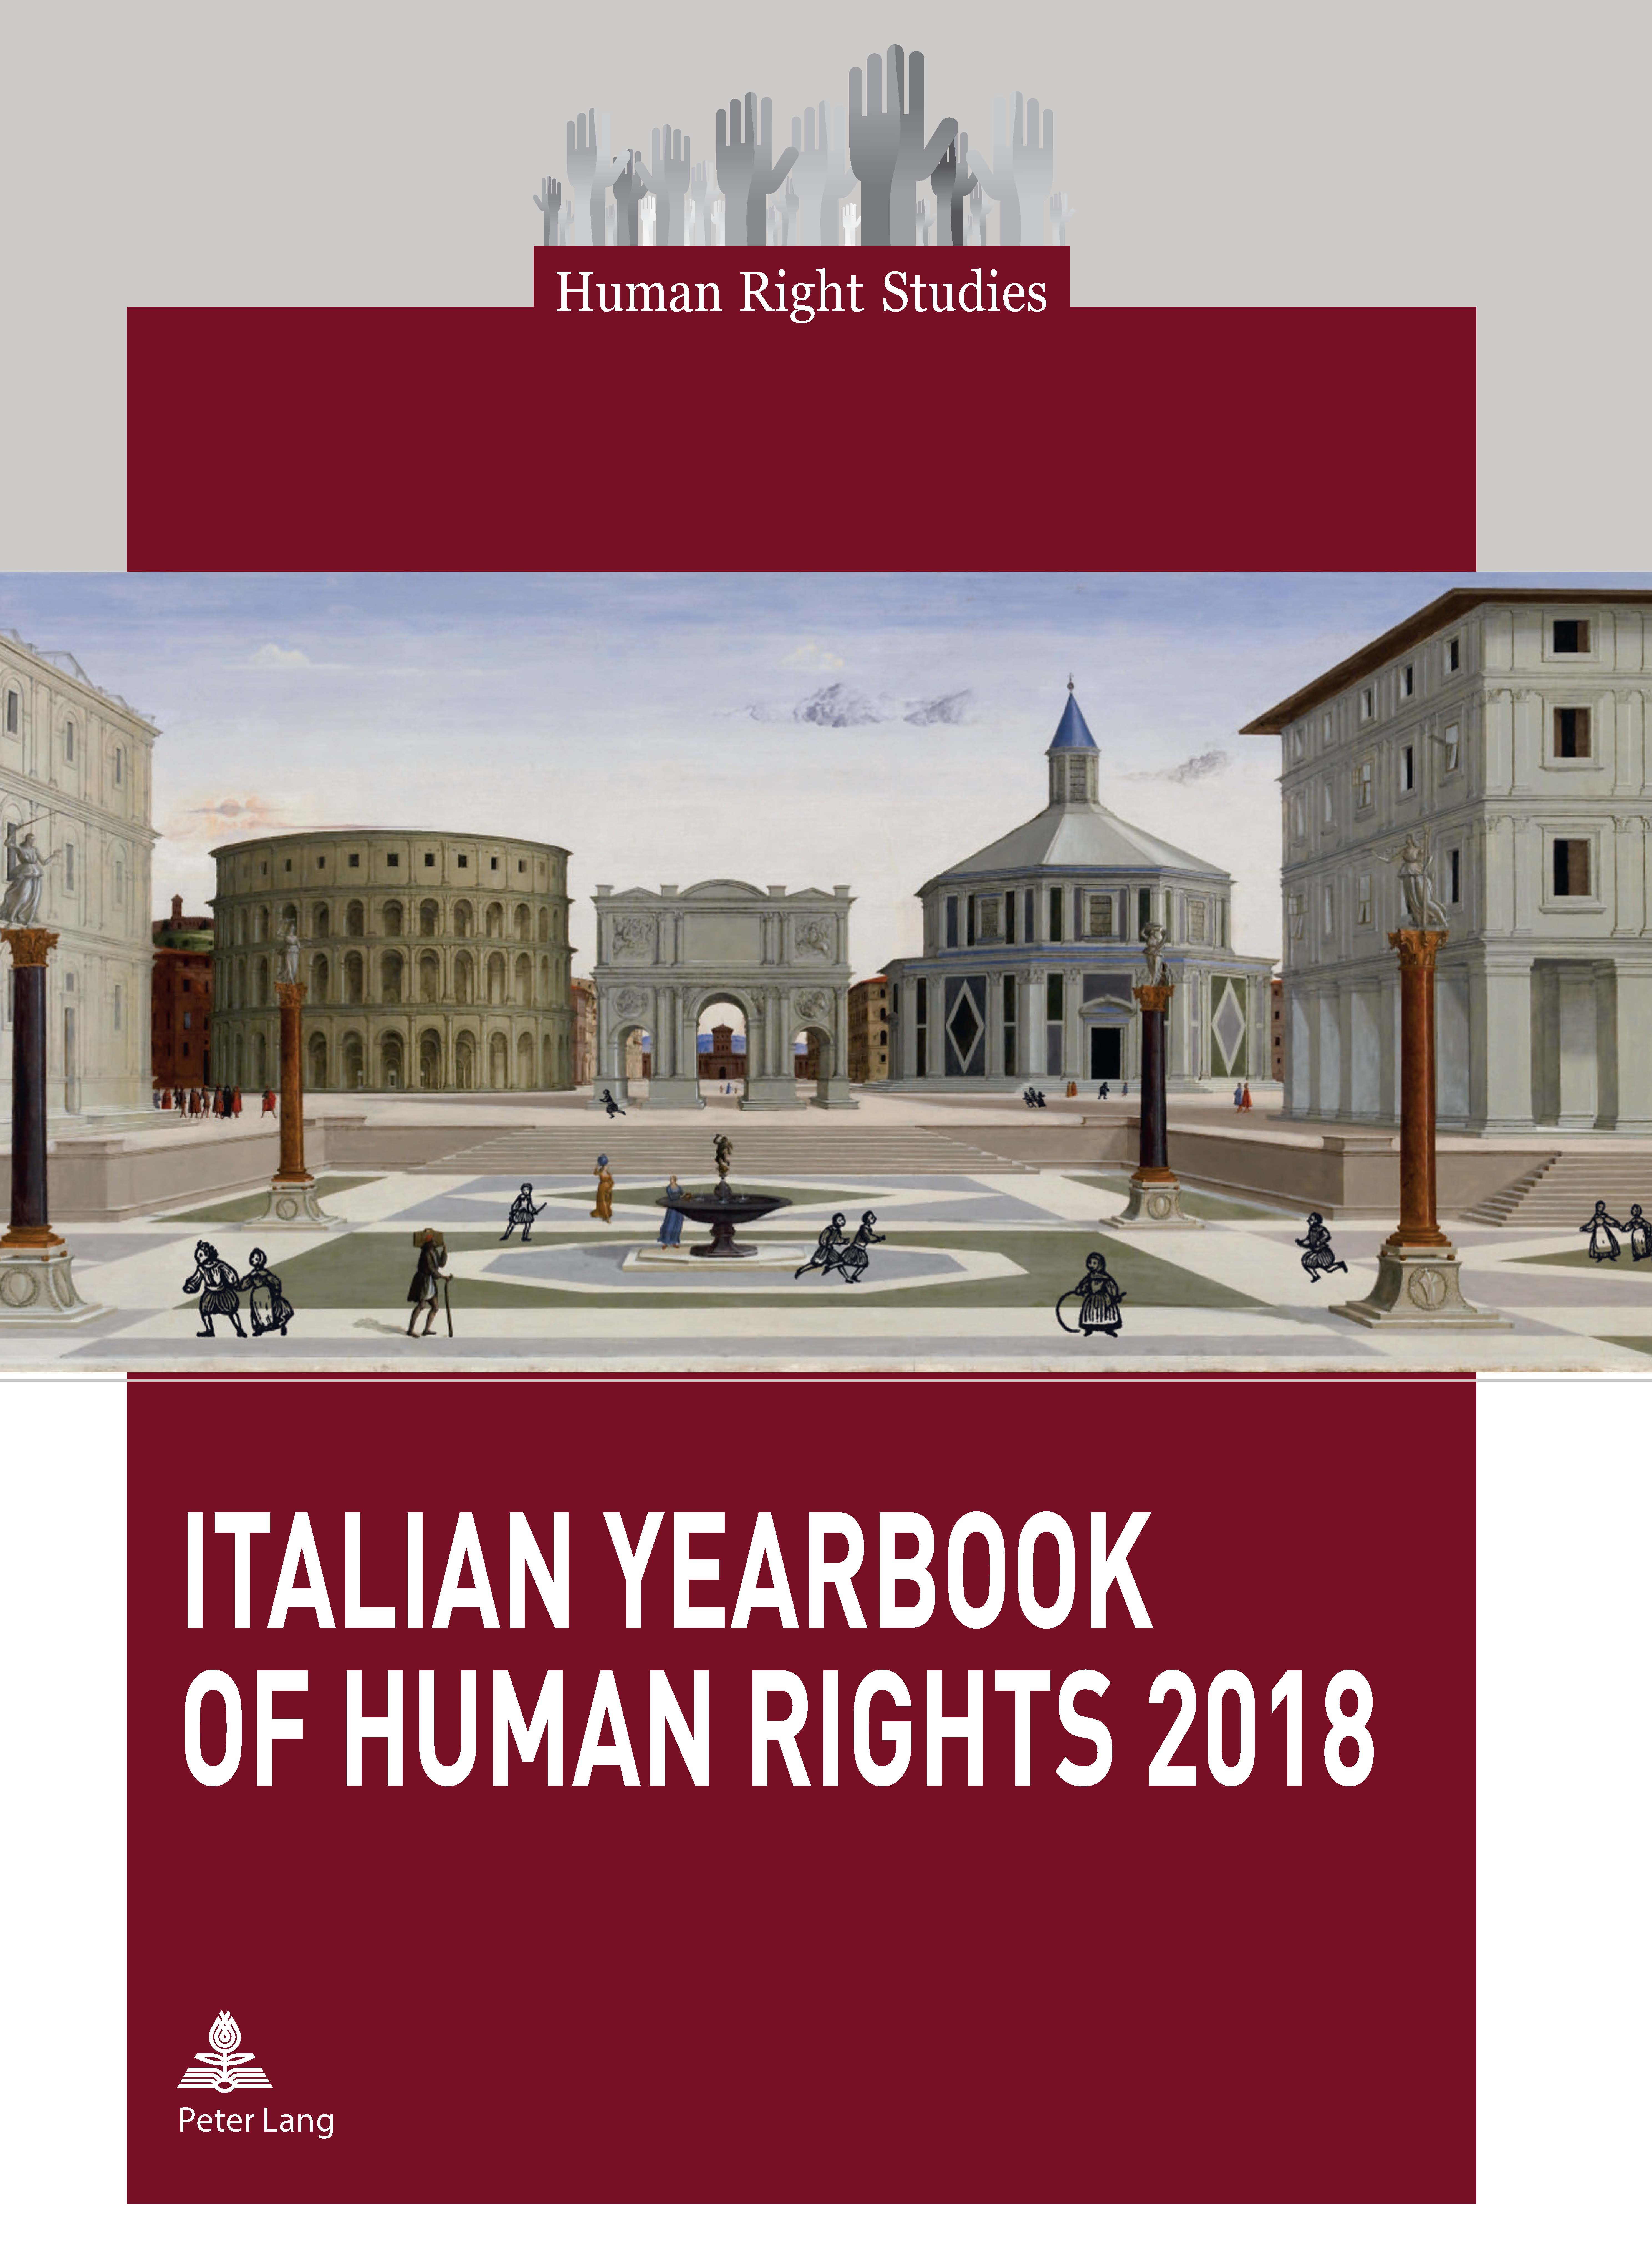 Cover of the Italian Yearbook of Human Rights 2018